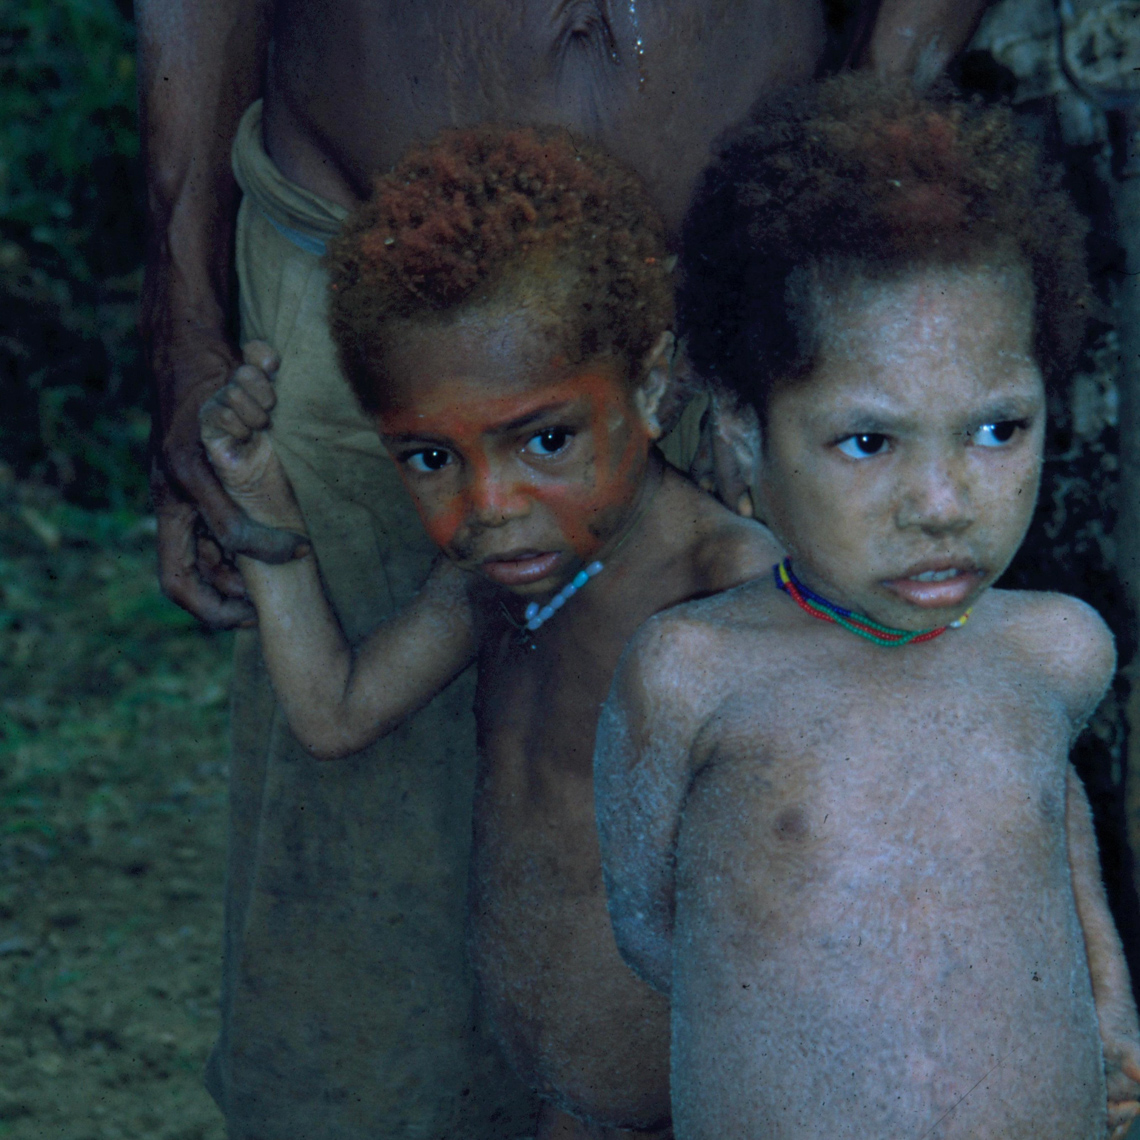 Small Kids with Body Paint, Remote New Guinea Village, Looking for Oceanic Art